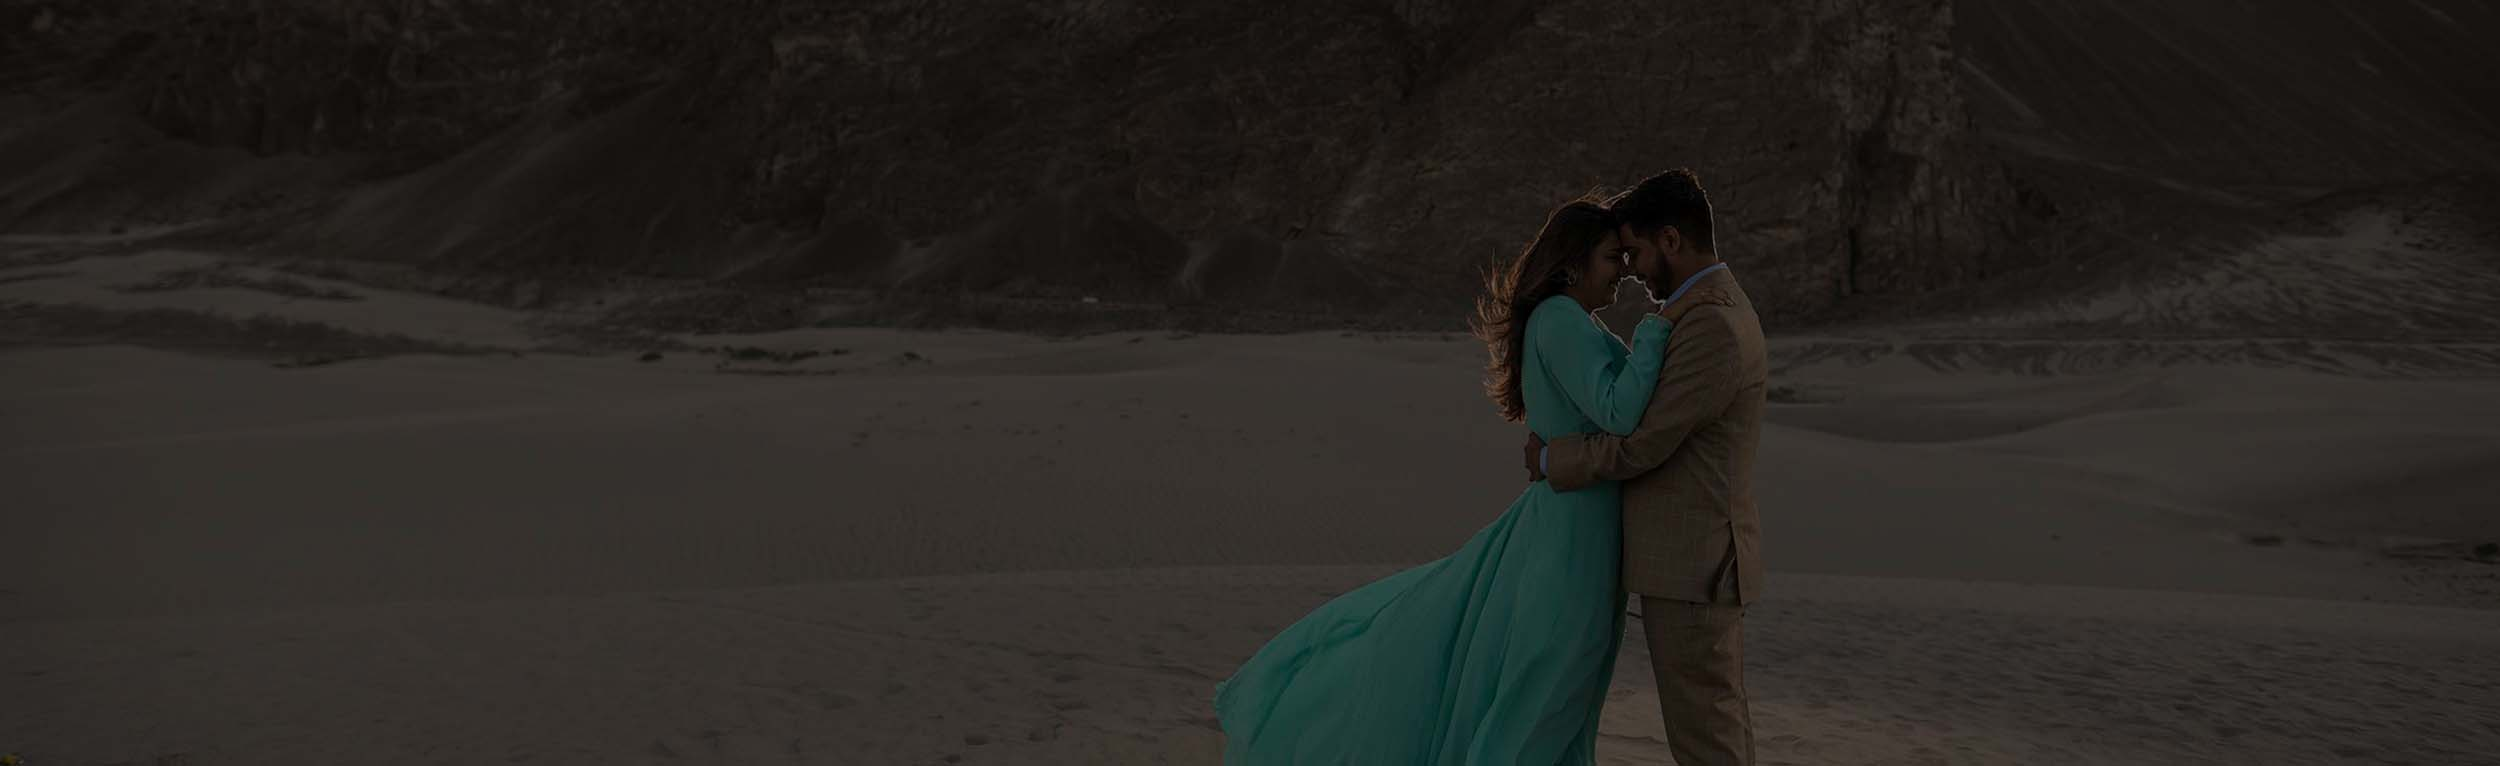 ANISH AND GRISHMA - LADKAH PRE WEDDING SHOOT